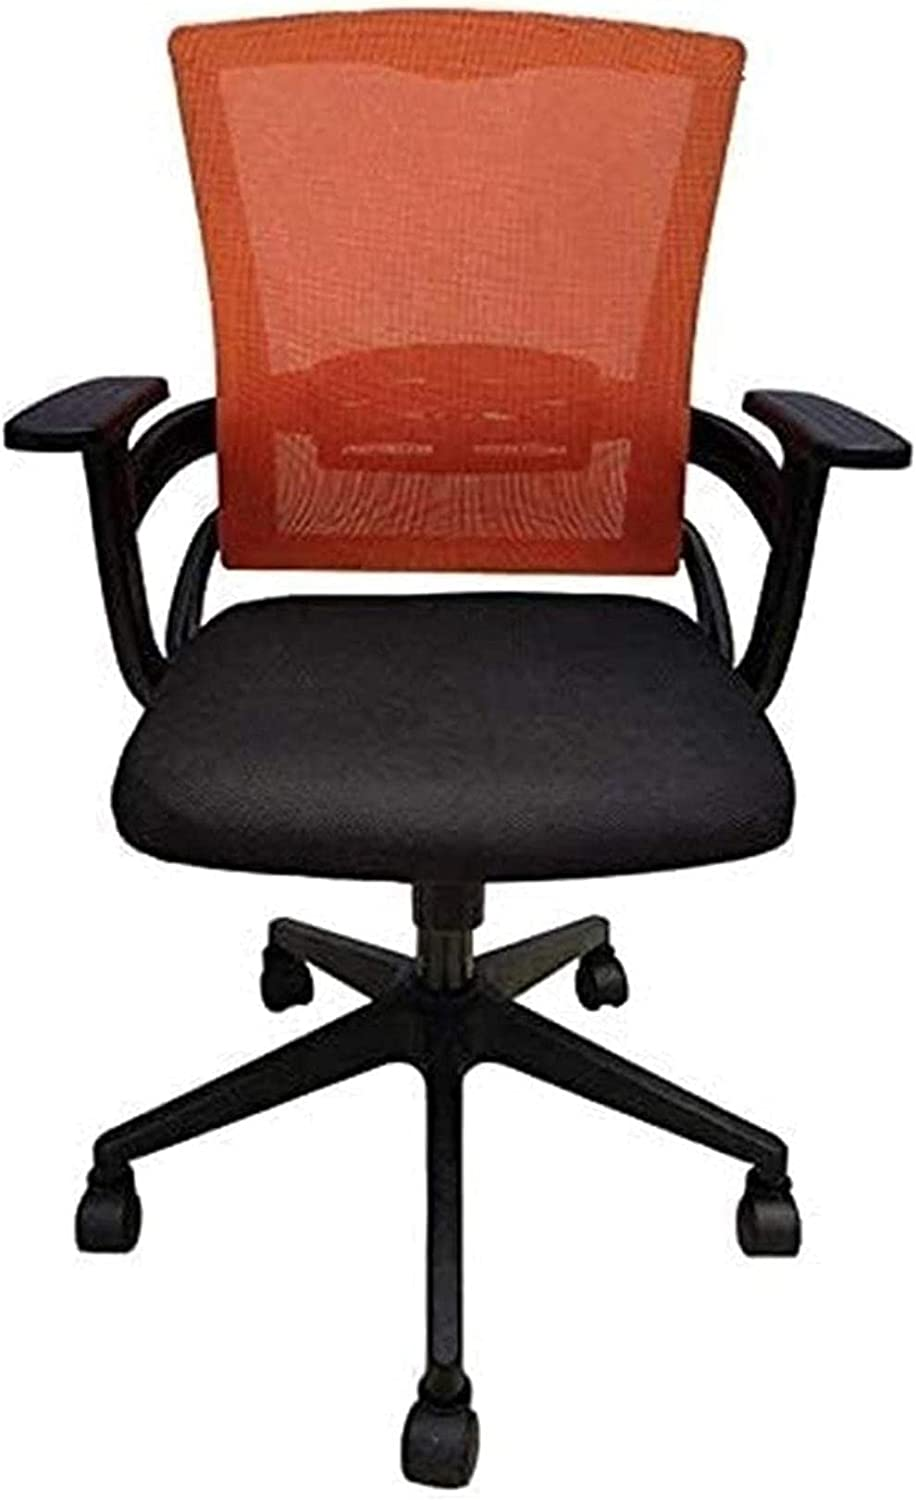 Xkun Office Directly managed store Chair Computer Home Ch Company Weekly update Employee